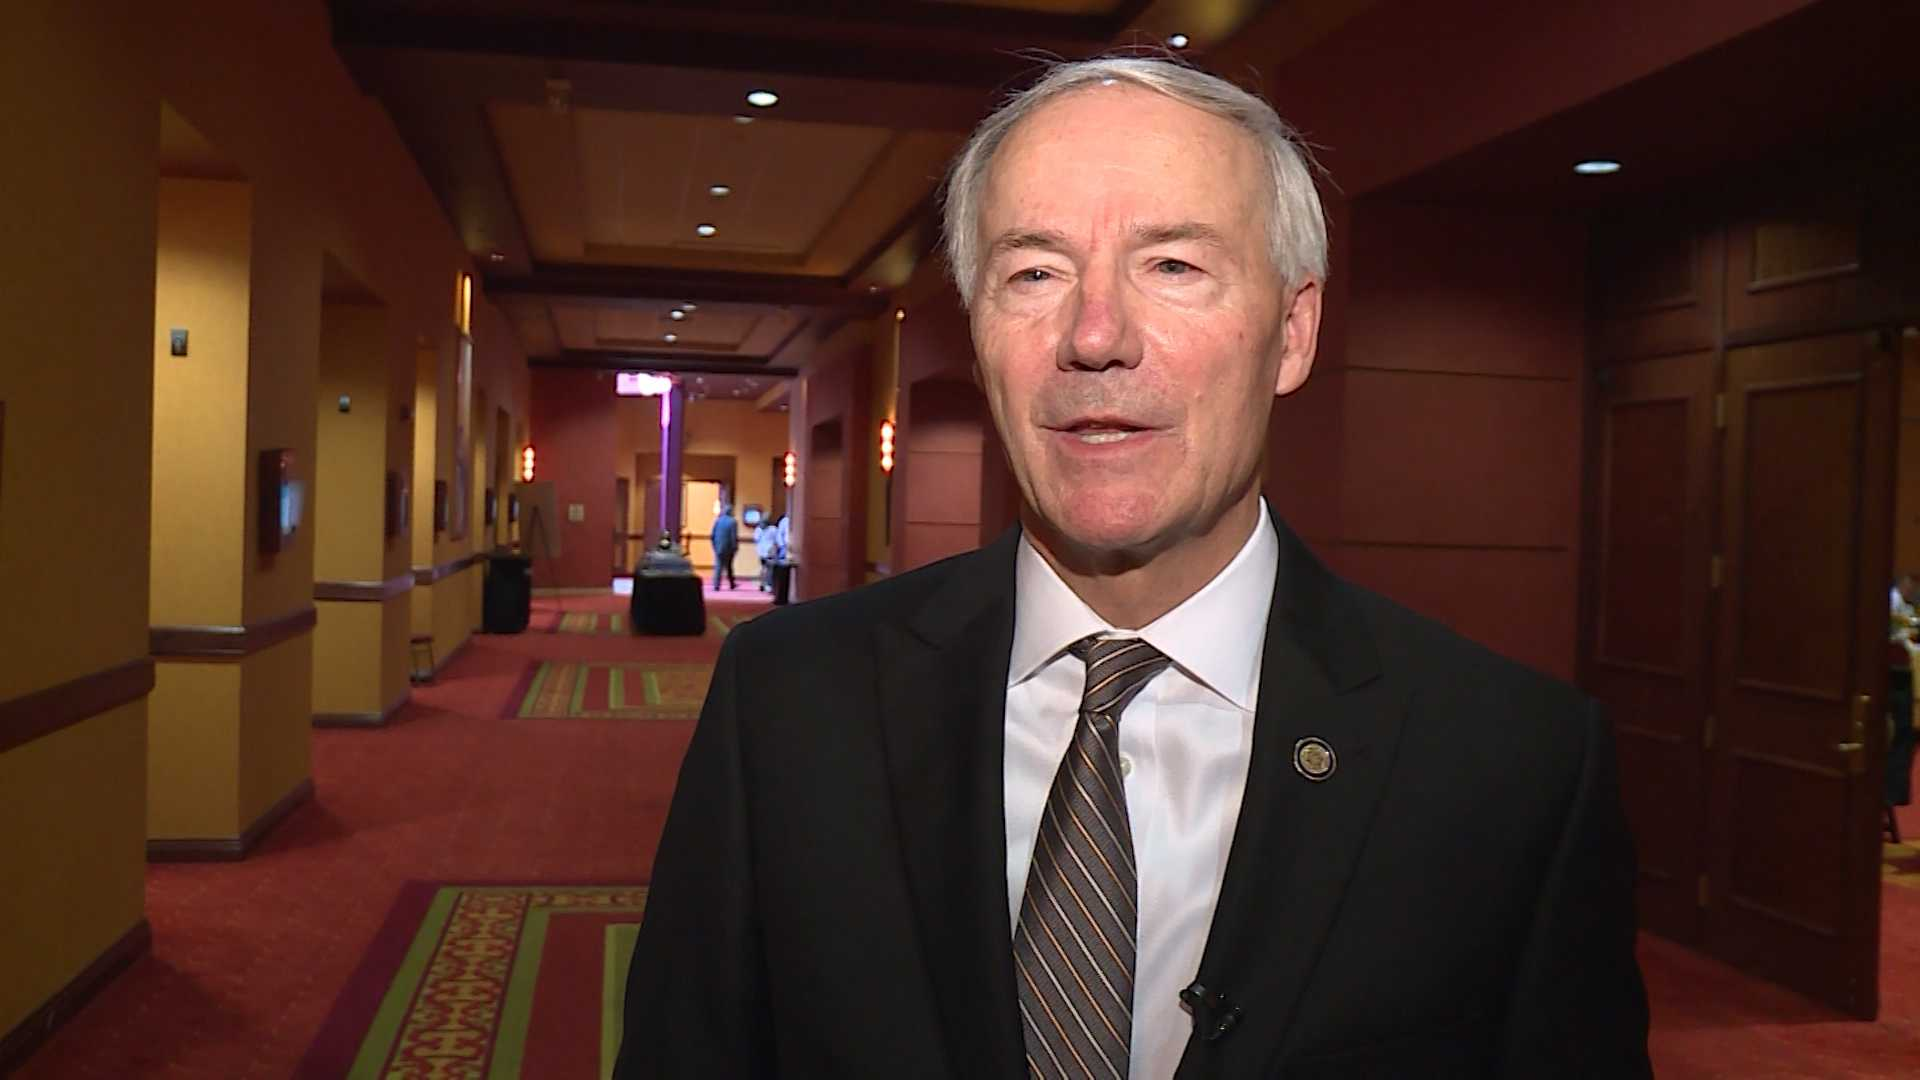 Arkansas Governor Proposes $50 Million Tax Cut In 2 Years